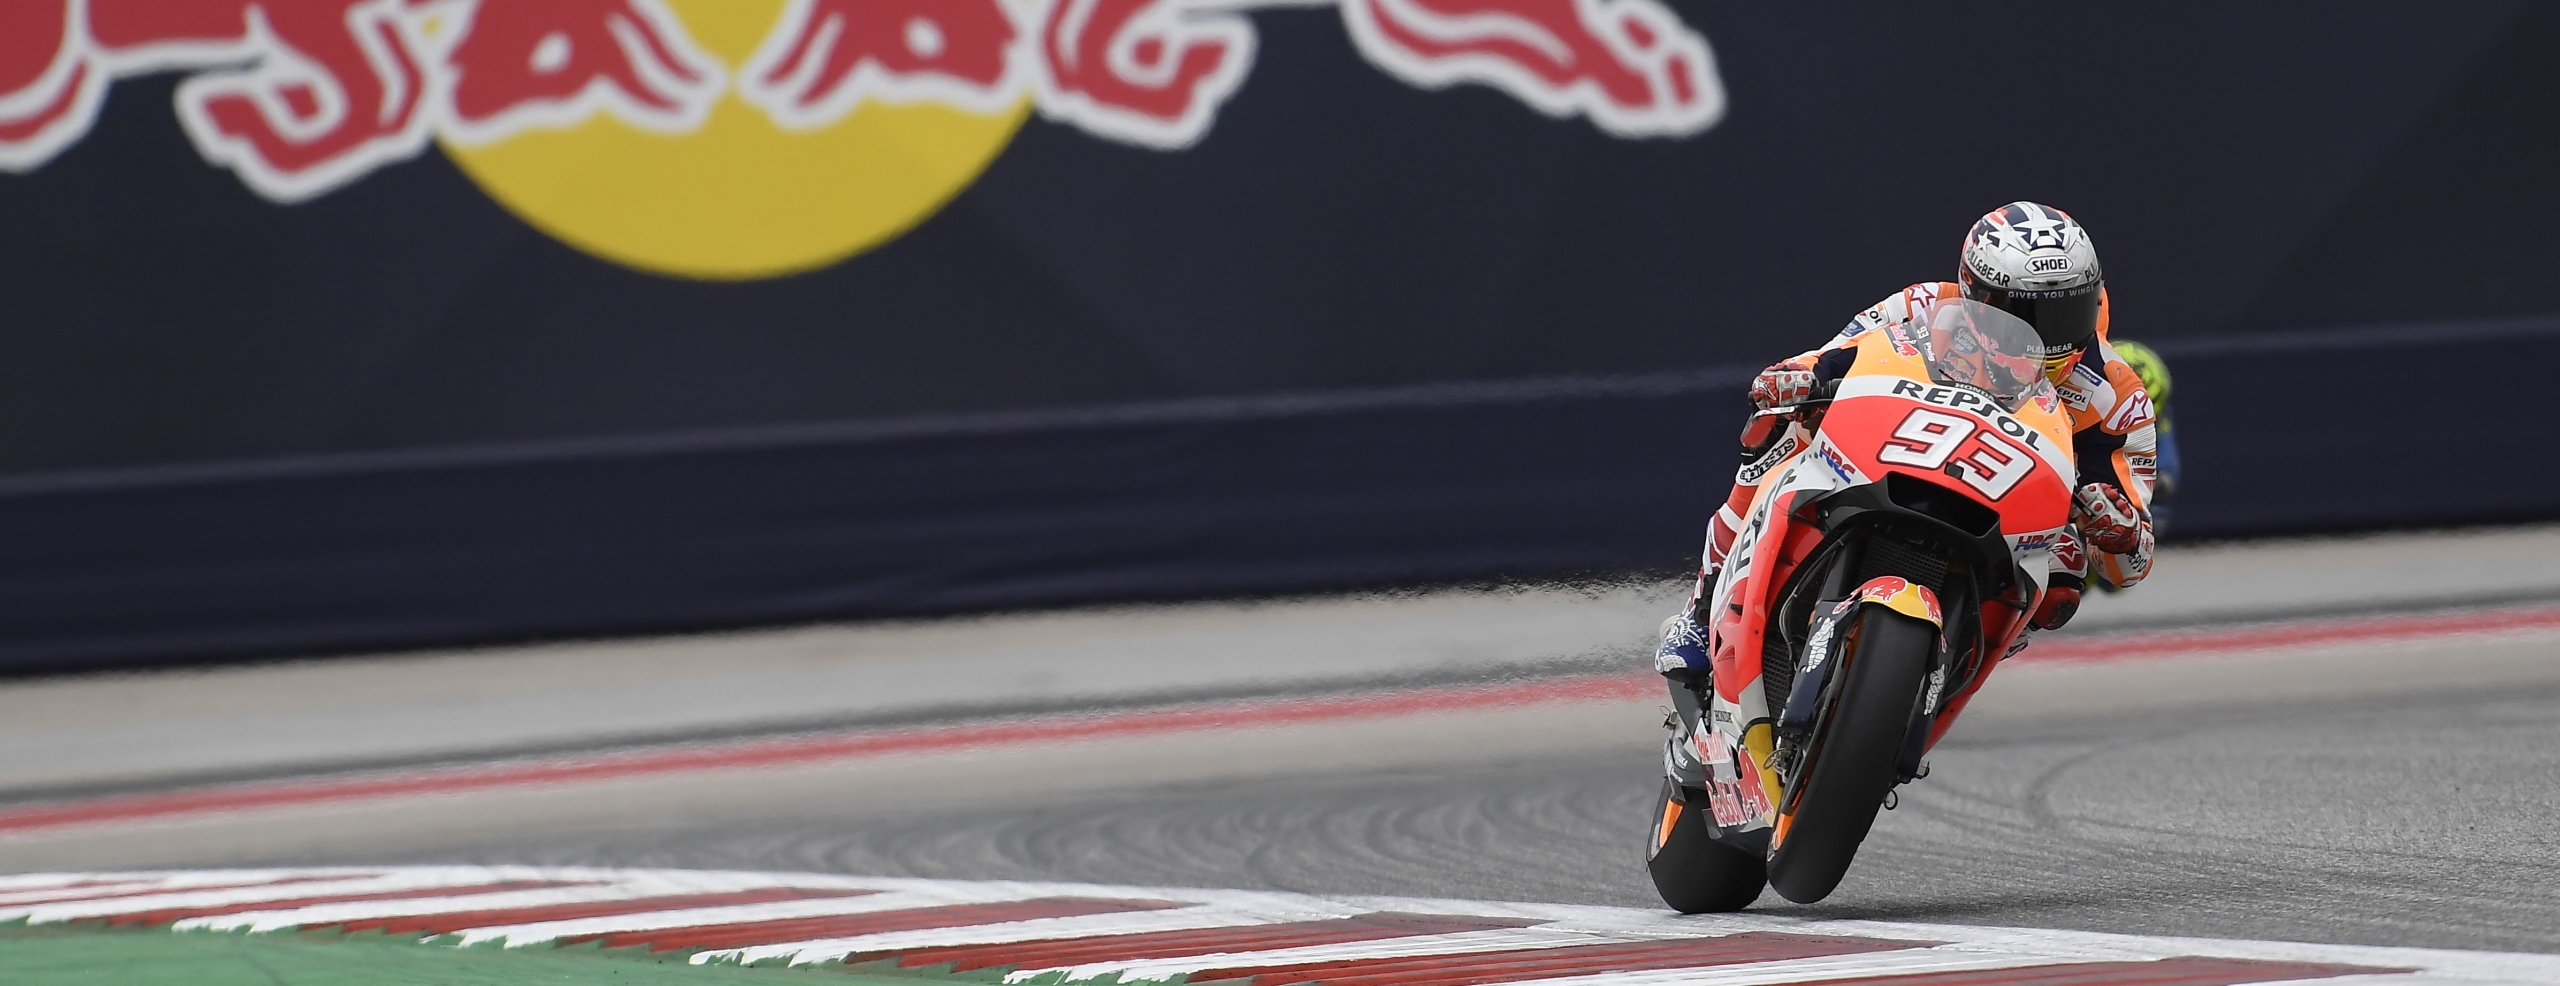 Marquez second-fastest at a dusty Austin track, Pedrosa a brave 10th